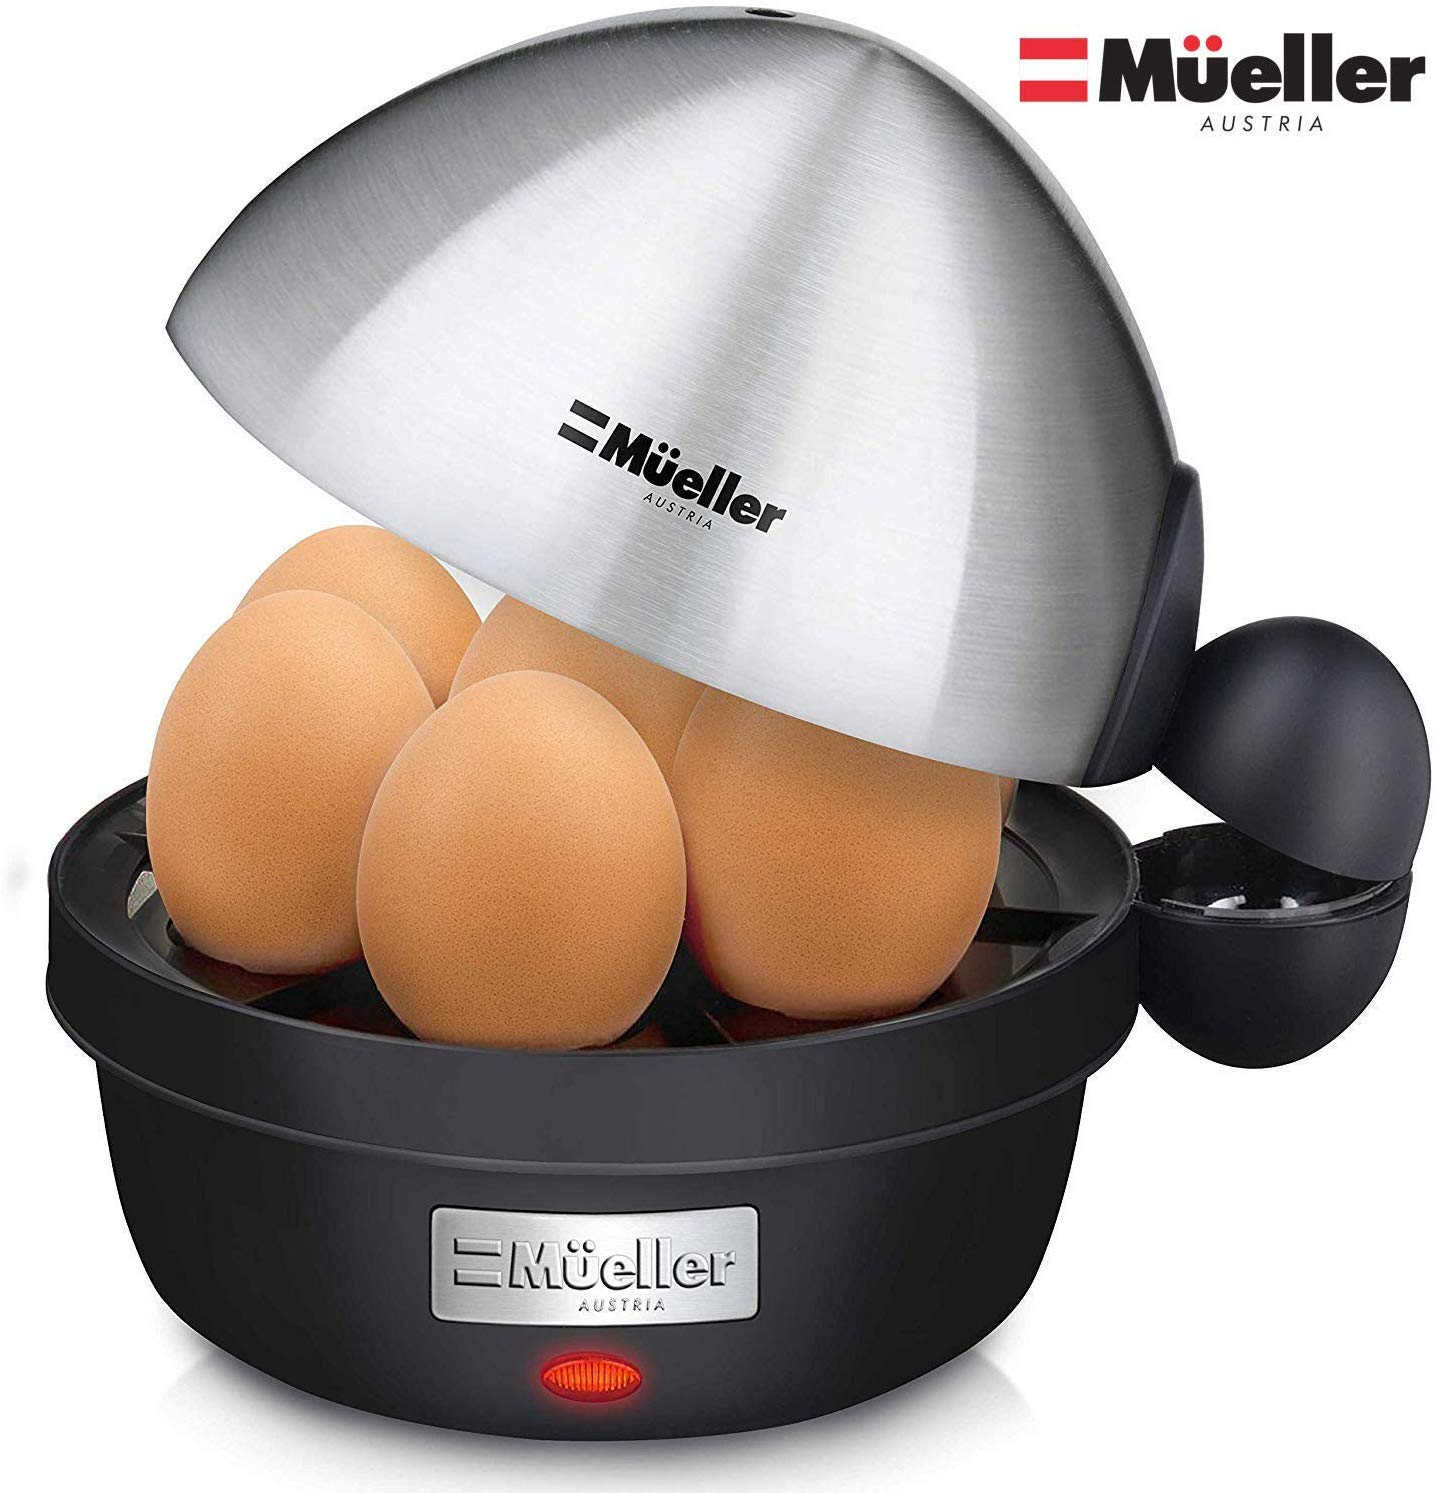 Mueller Rapid Egg Cooker, Hard Boiled Egg Maker with Auto Shut-Off, Noise-Free, 7 Egg Capacity and Stainless Steel Lid, Perfect for Keto Diets